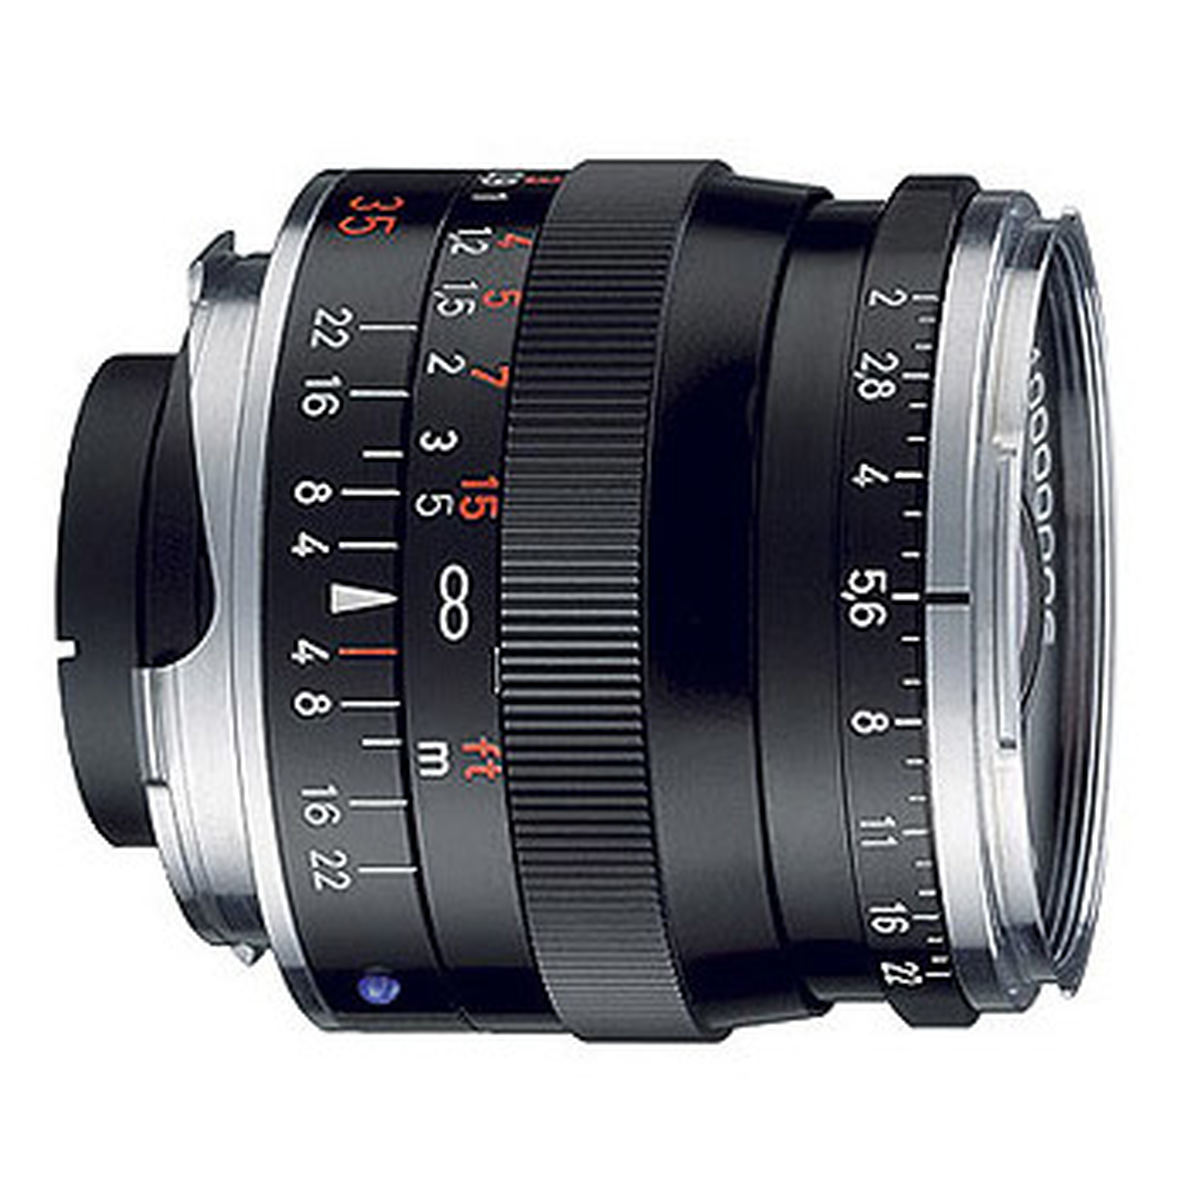 Zeiss ZM Biogon 35mm f/2 : Specifications and Opinions | JuzaPhoto